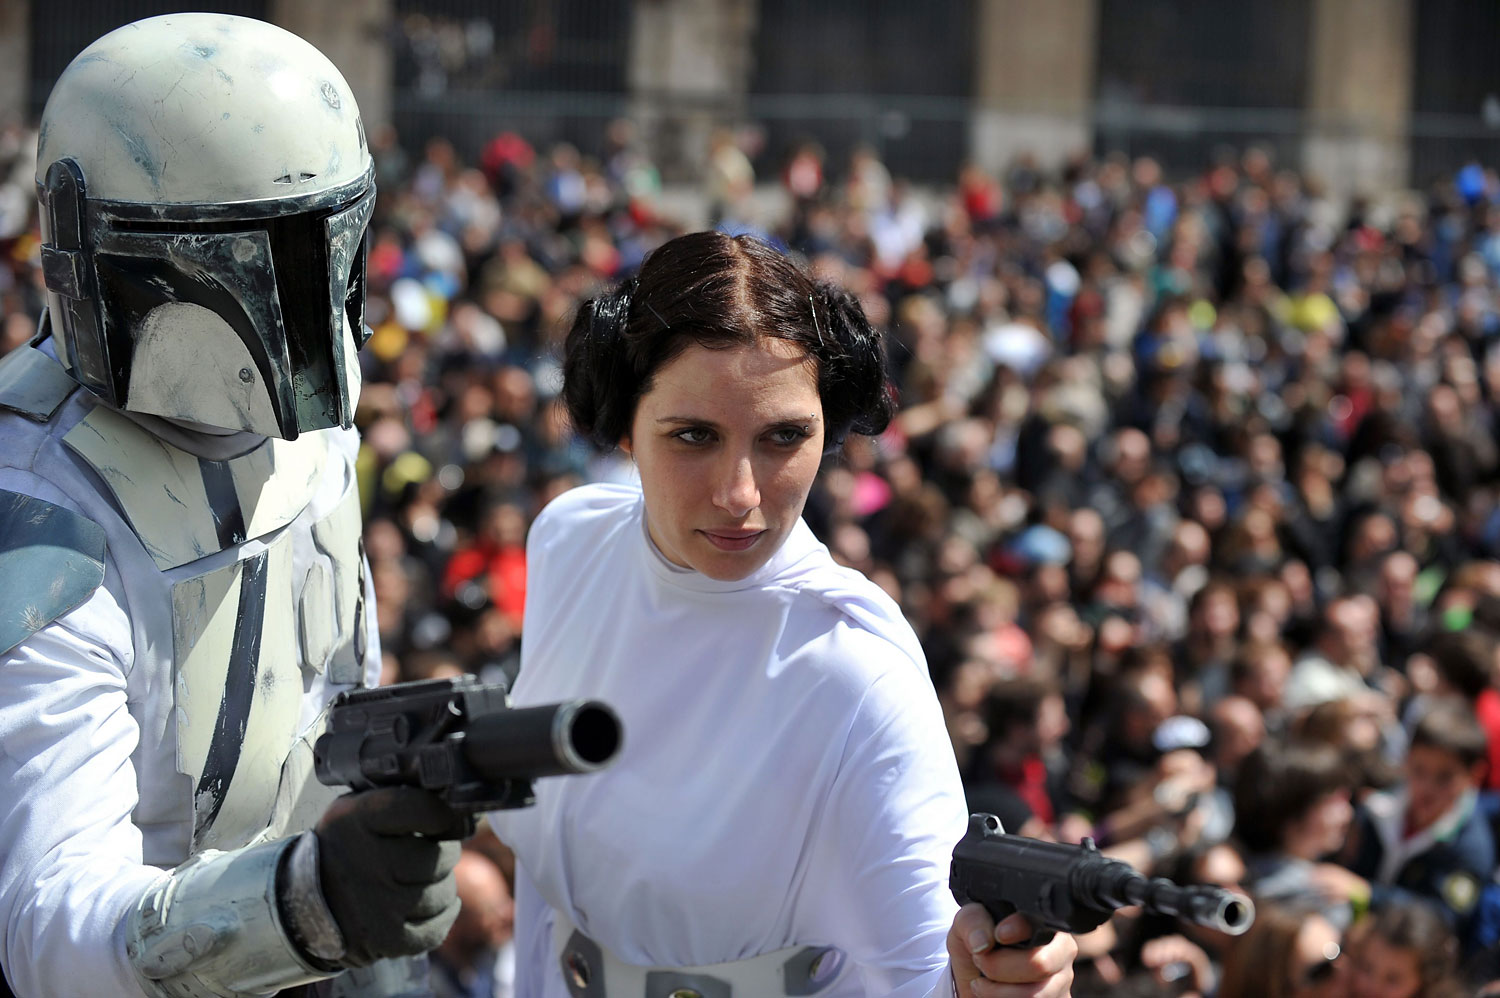 A member of the Star Wars fan club dressed as Princess Leia celebrates  Star Wars Day  in front of the Colosseum in central Rome on May 4, 2014.